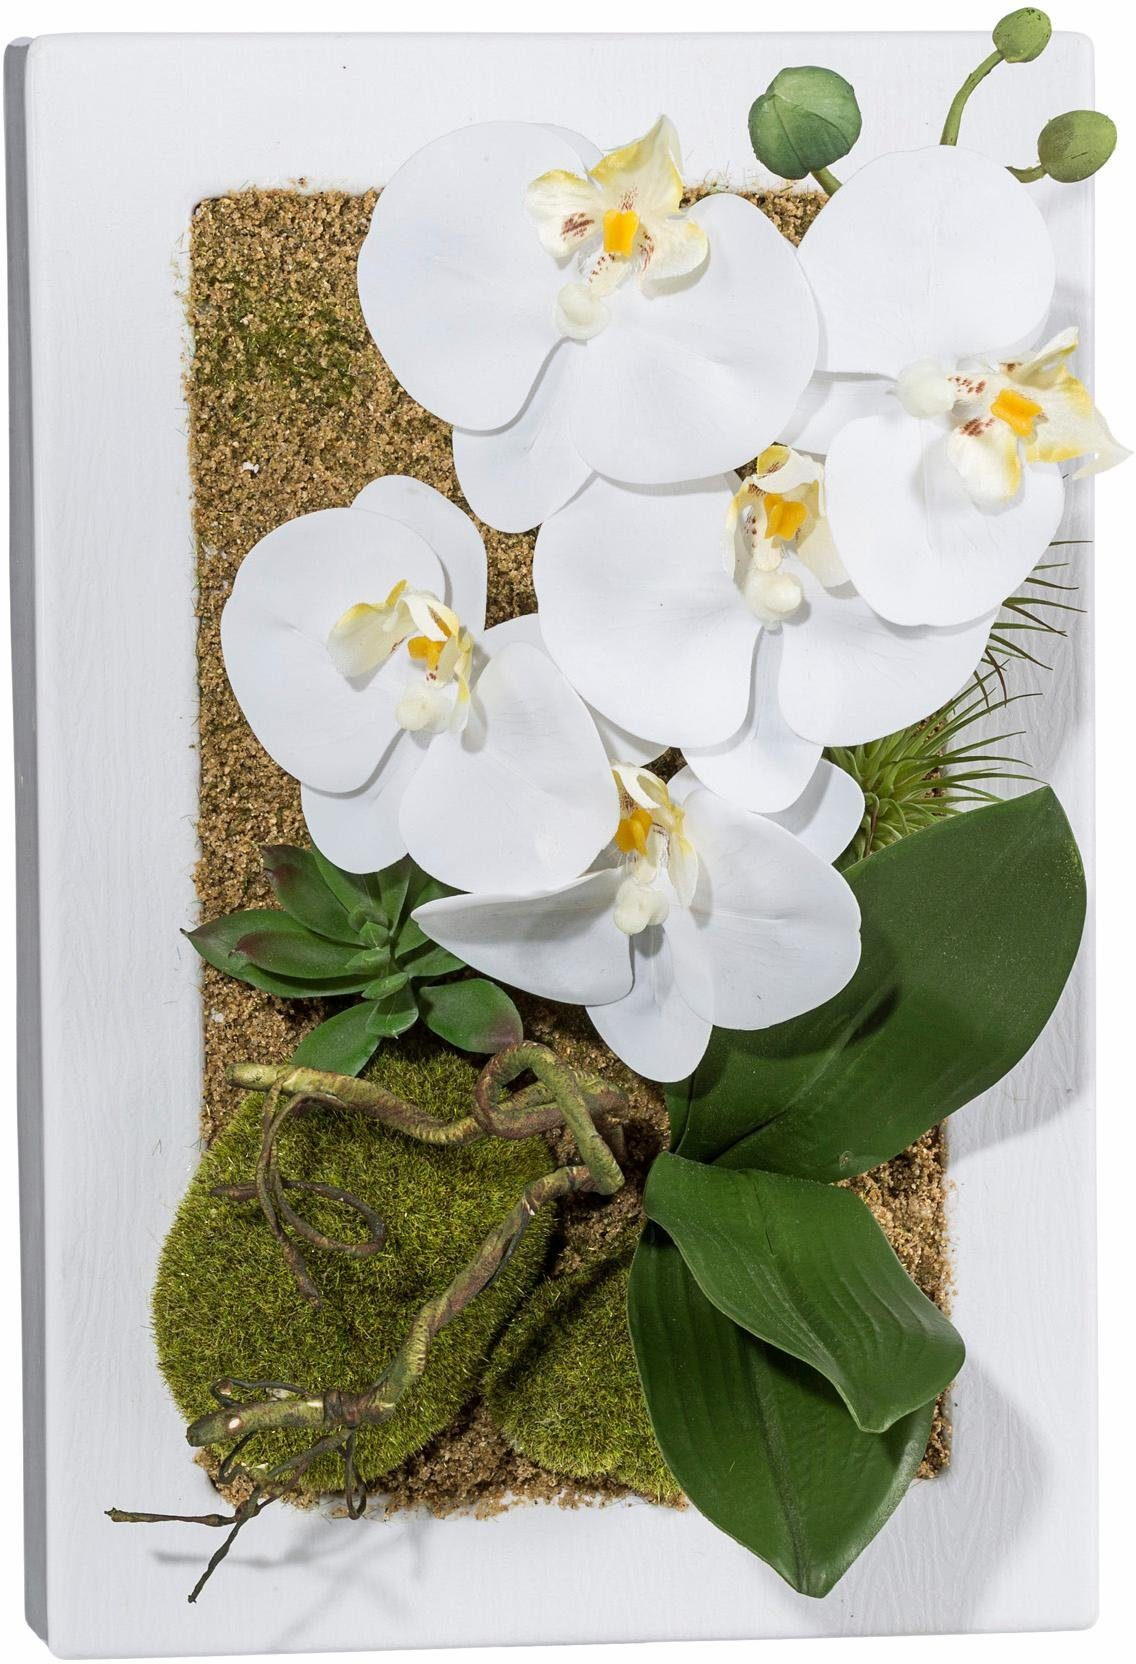 Home affaire Wandbild »Orchidee«